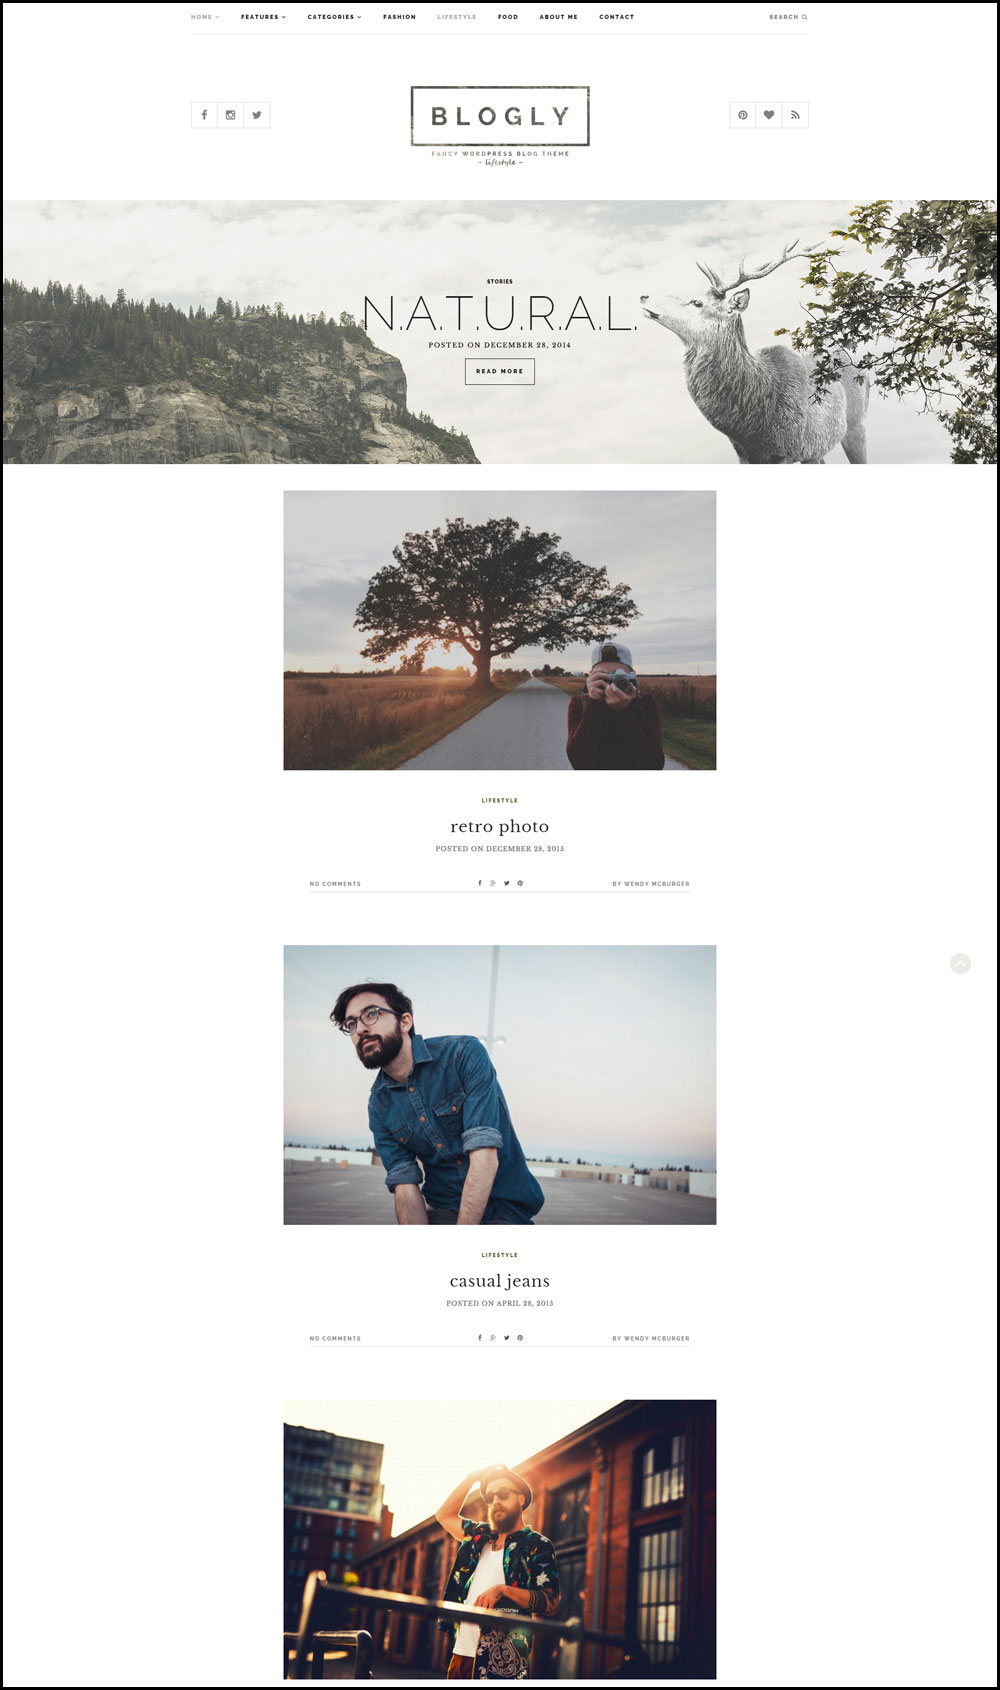 Blogly – A Fresh Looking Lifestyle Blog Theme